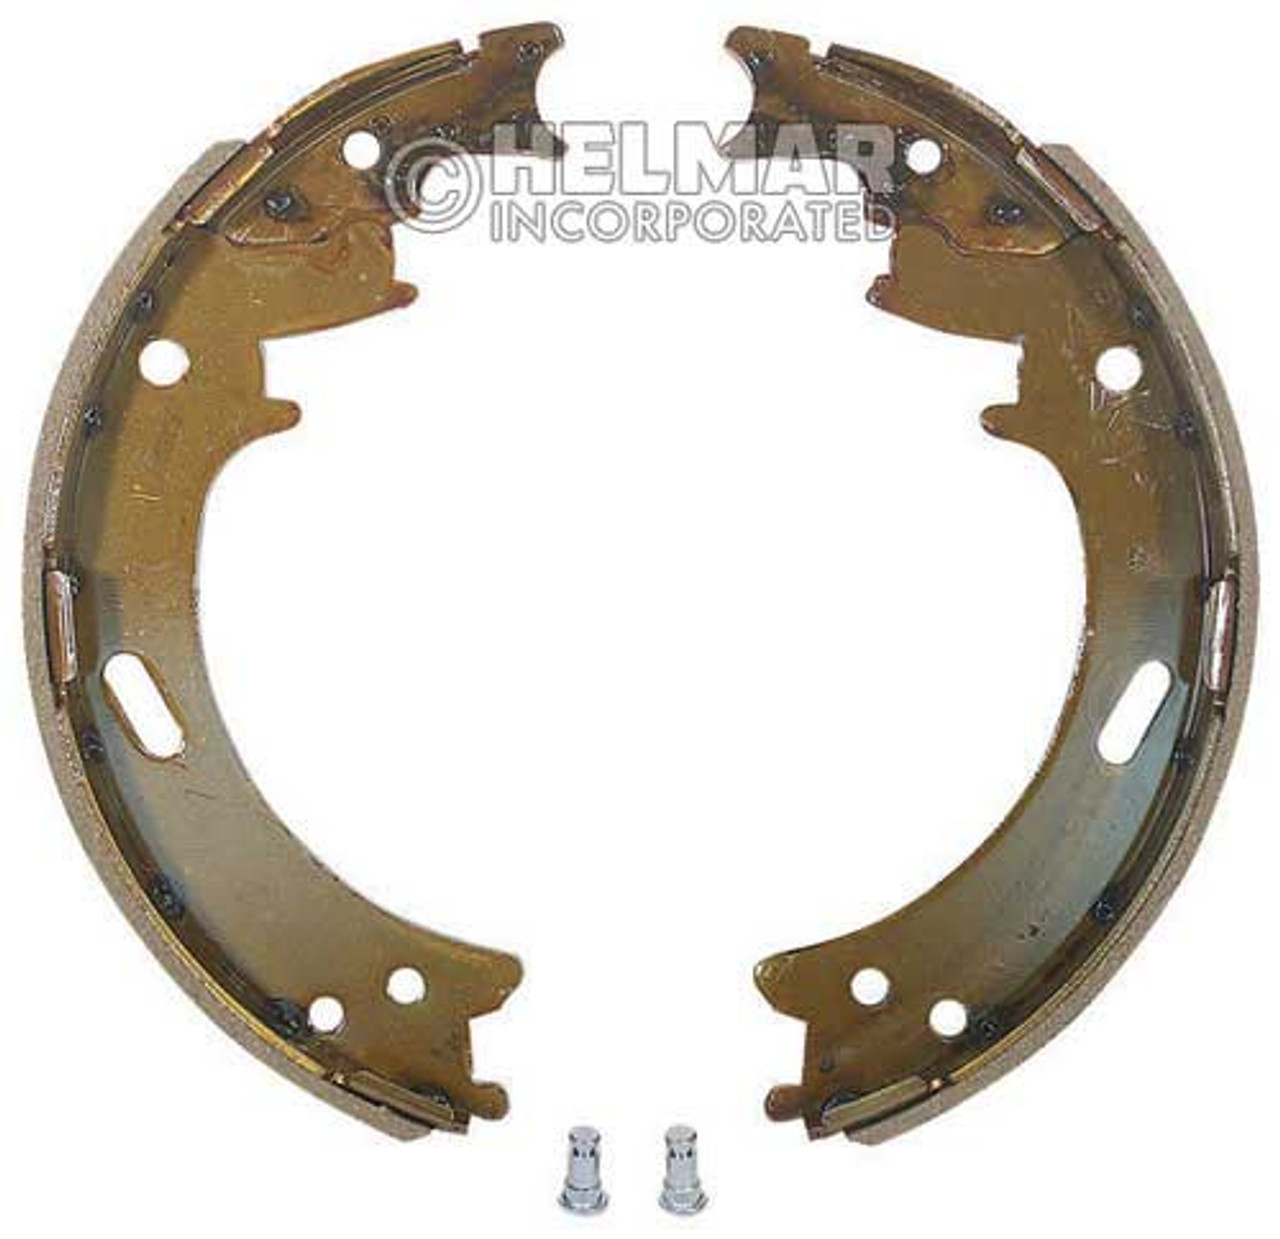 1463226 Hyster Brake Shoe Set Type 2BS-10, 2 Shoes